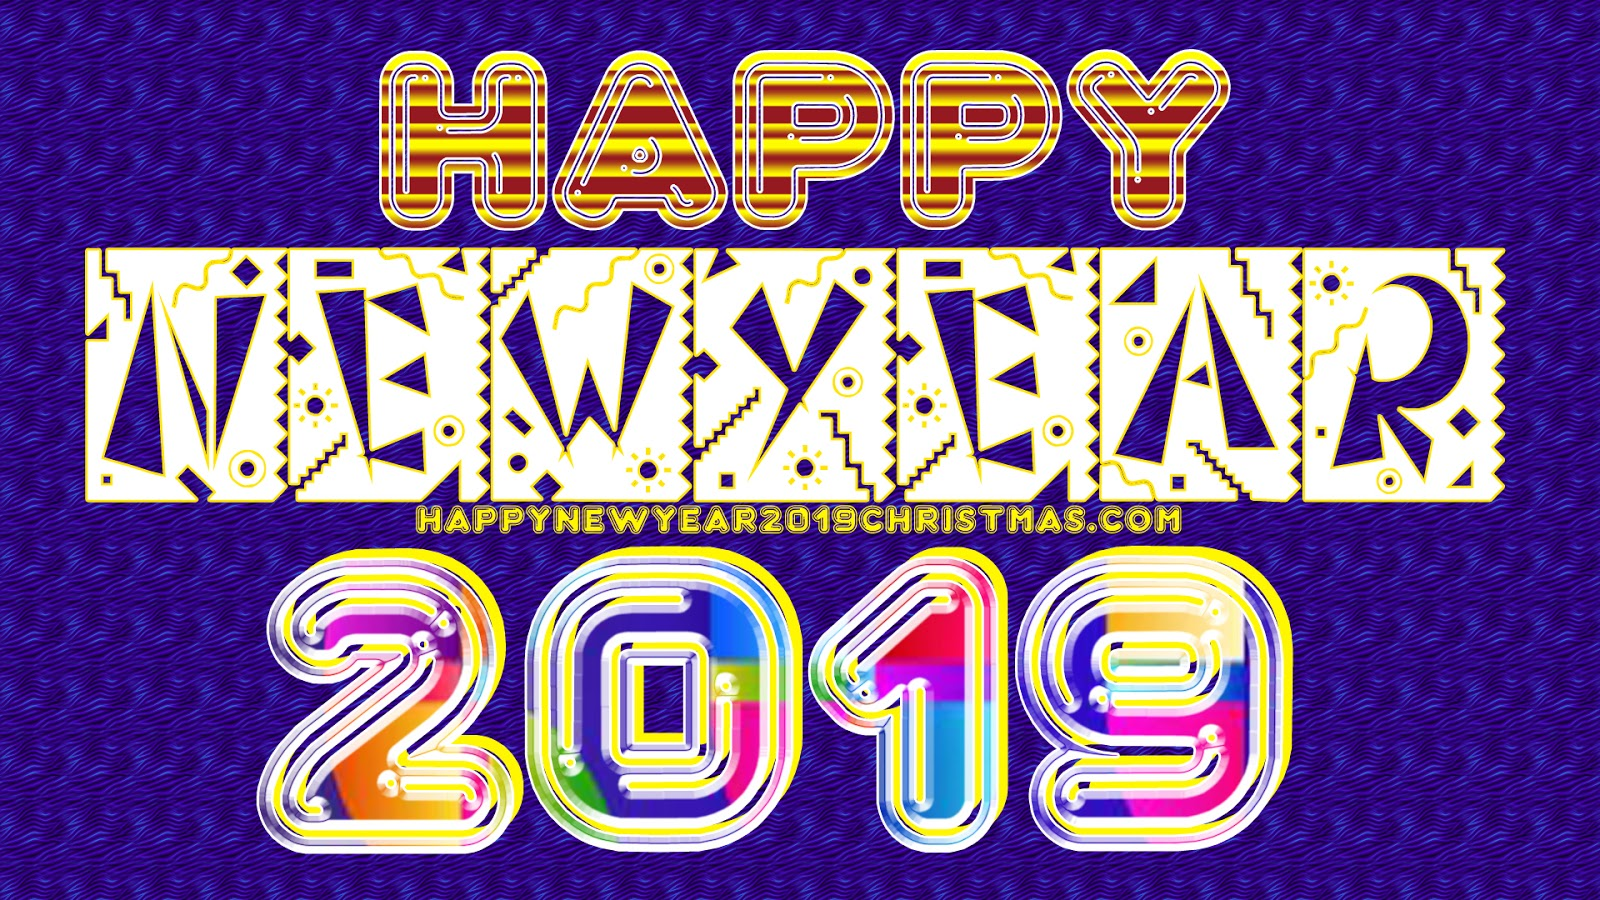 Happy New Year 2019 Facebook Status messages | Happy New Year 2019 ...